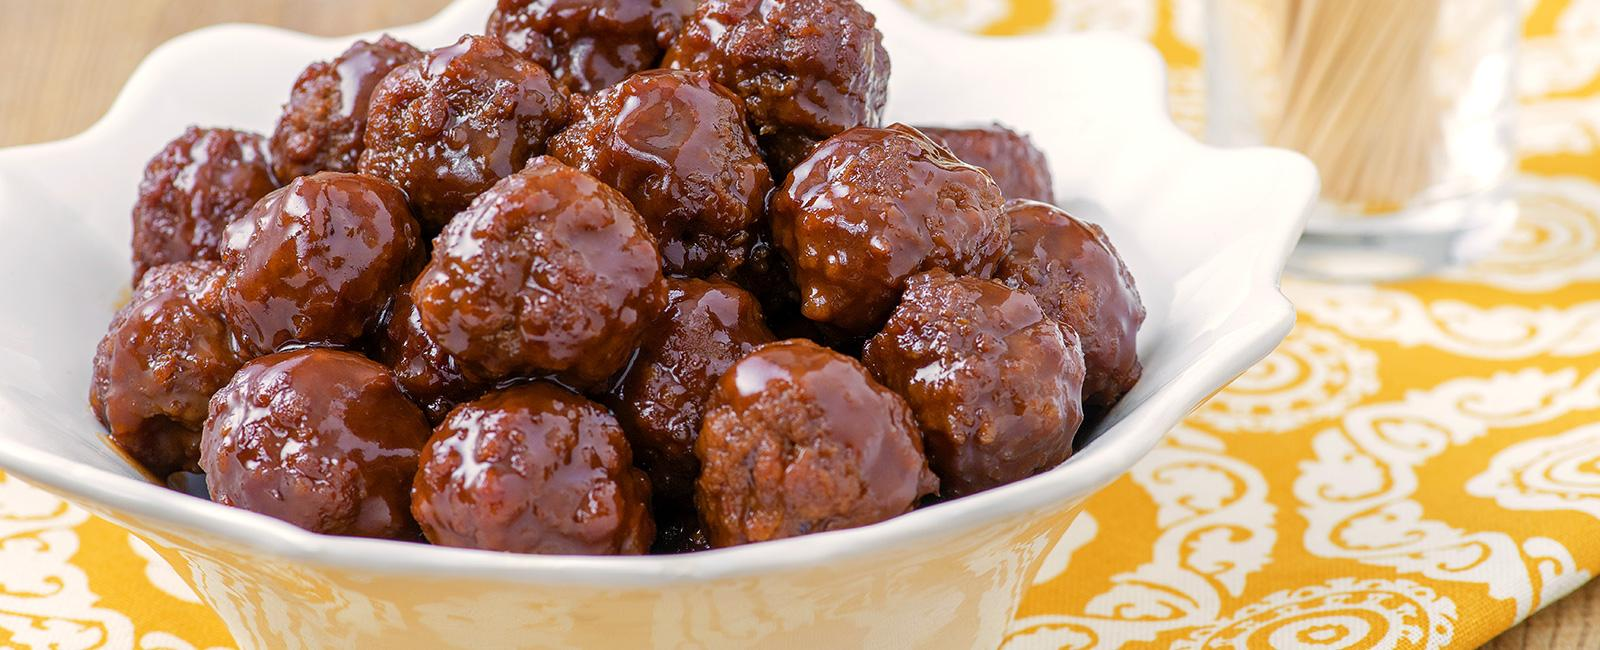 Welch's Grape Jelly Meatballs